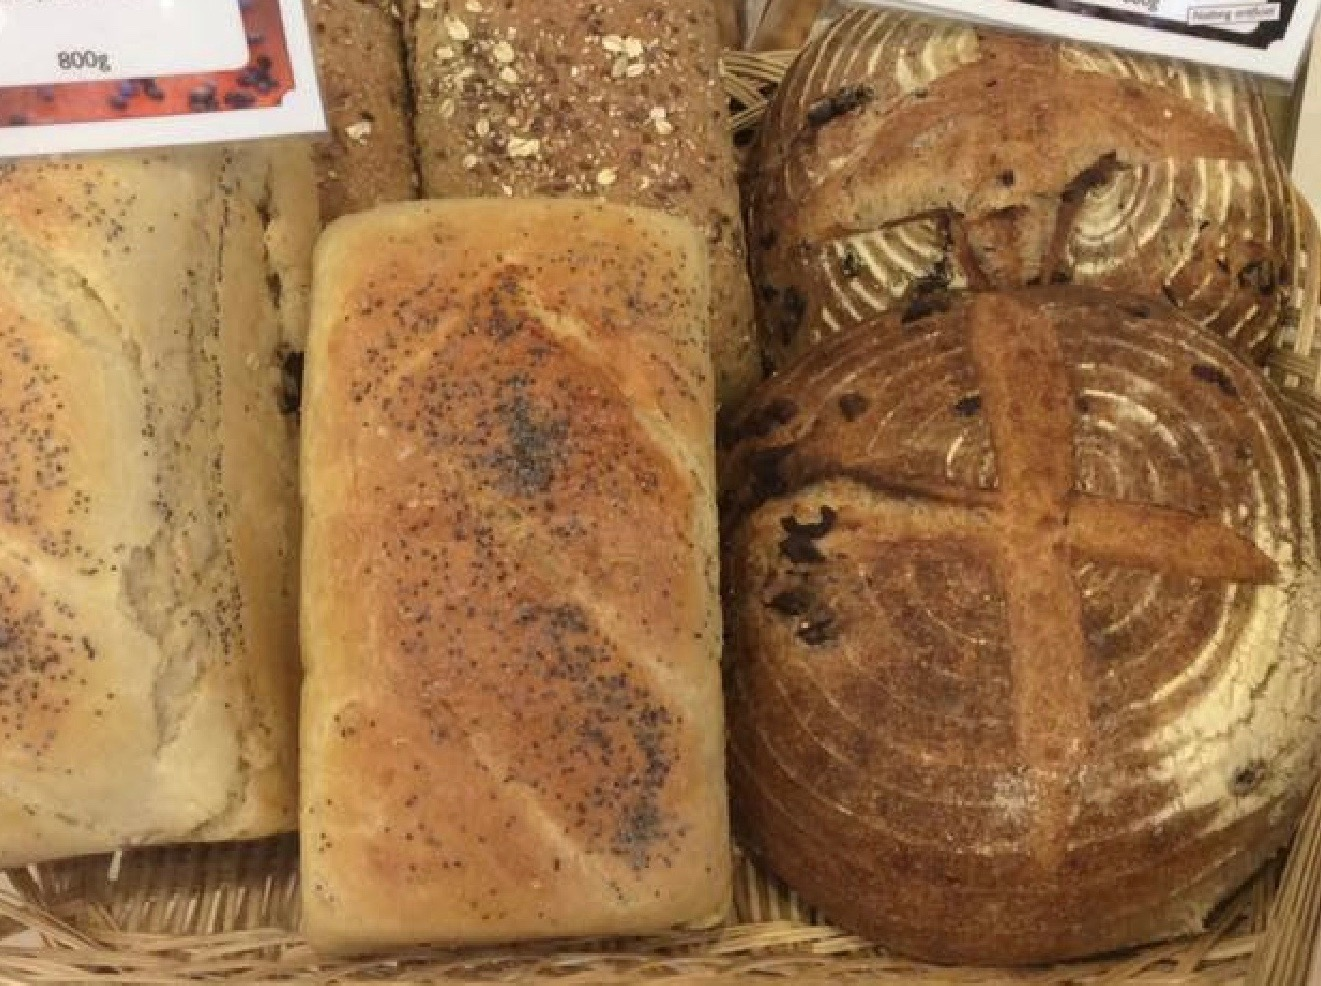 Various artisan-made breads and rolls